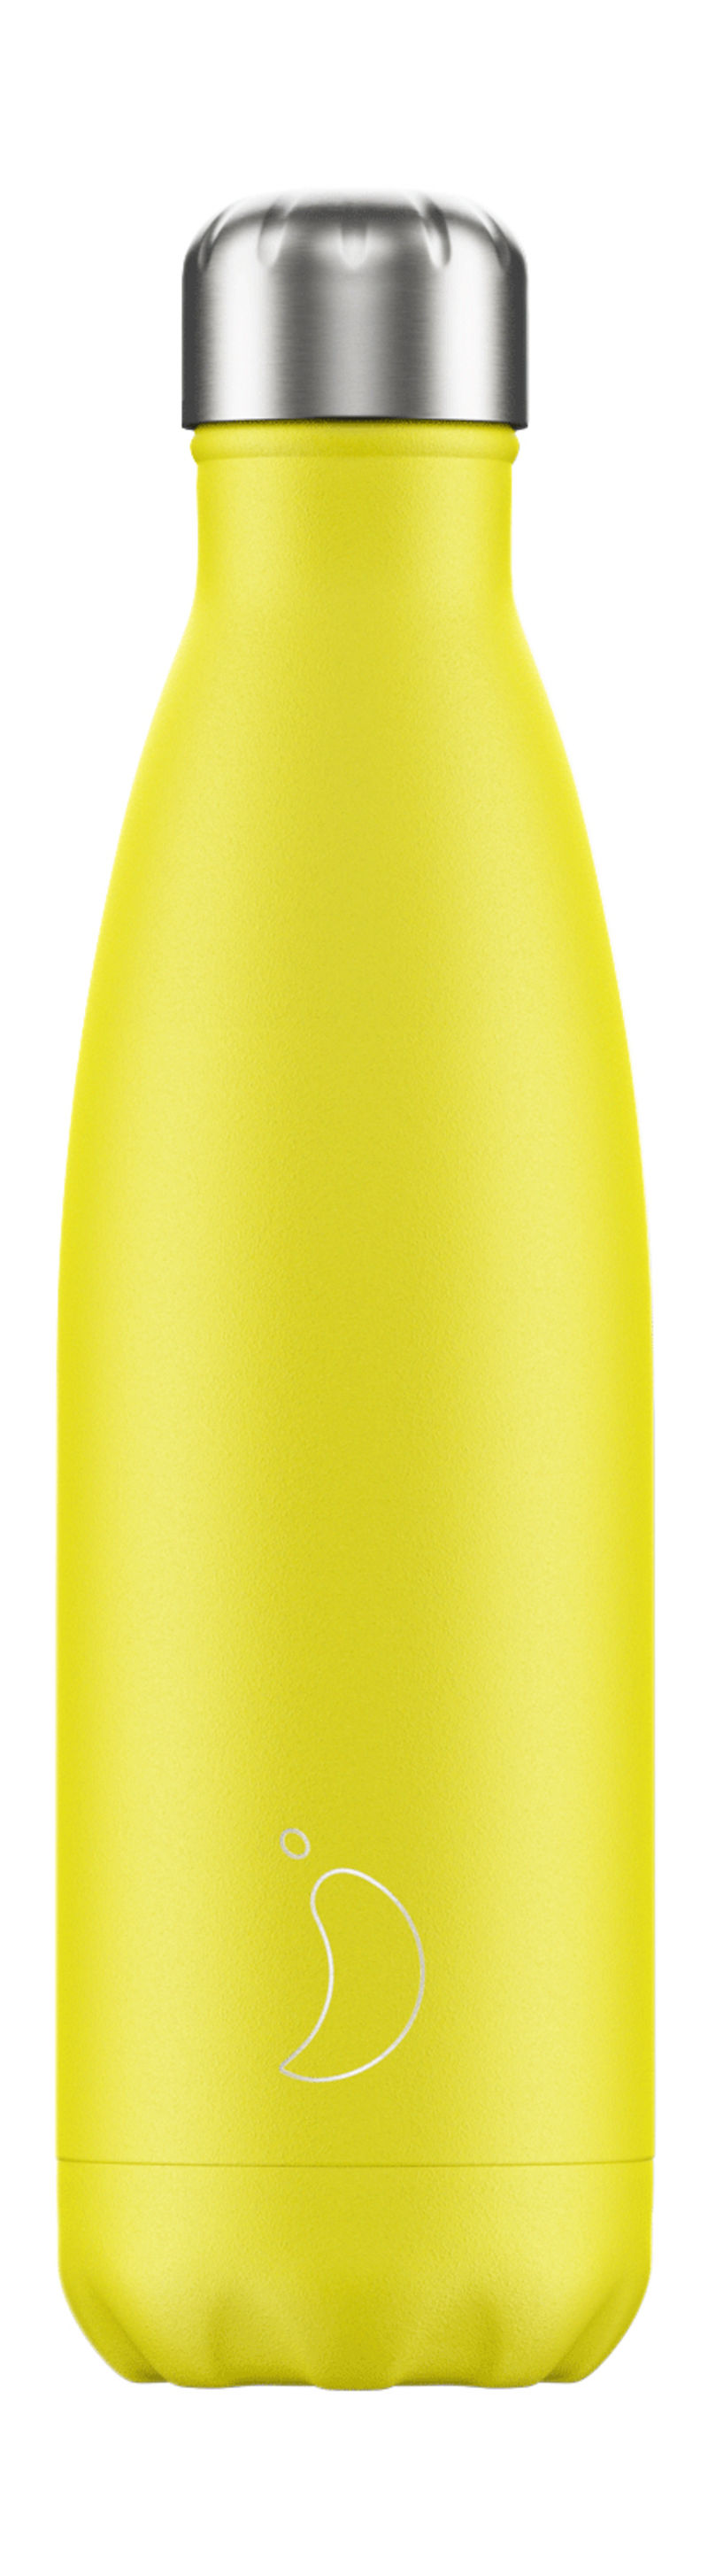 BOTELLA INOX AMARILLO MATE 500ML